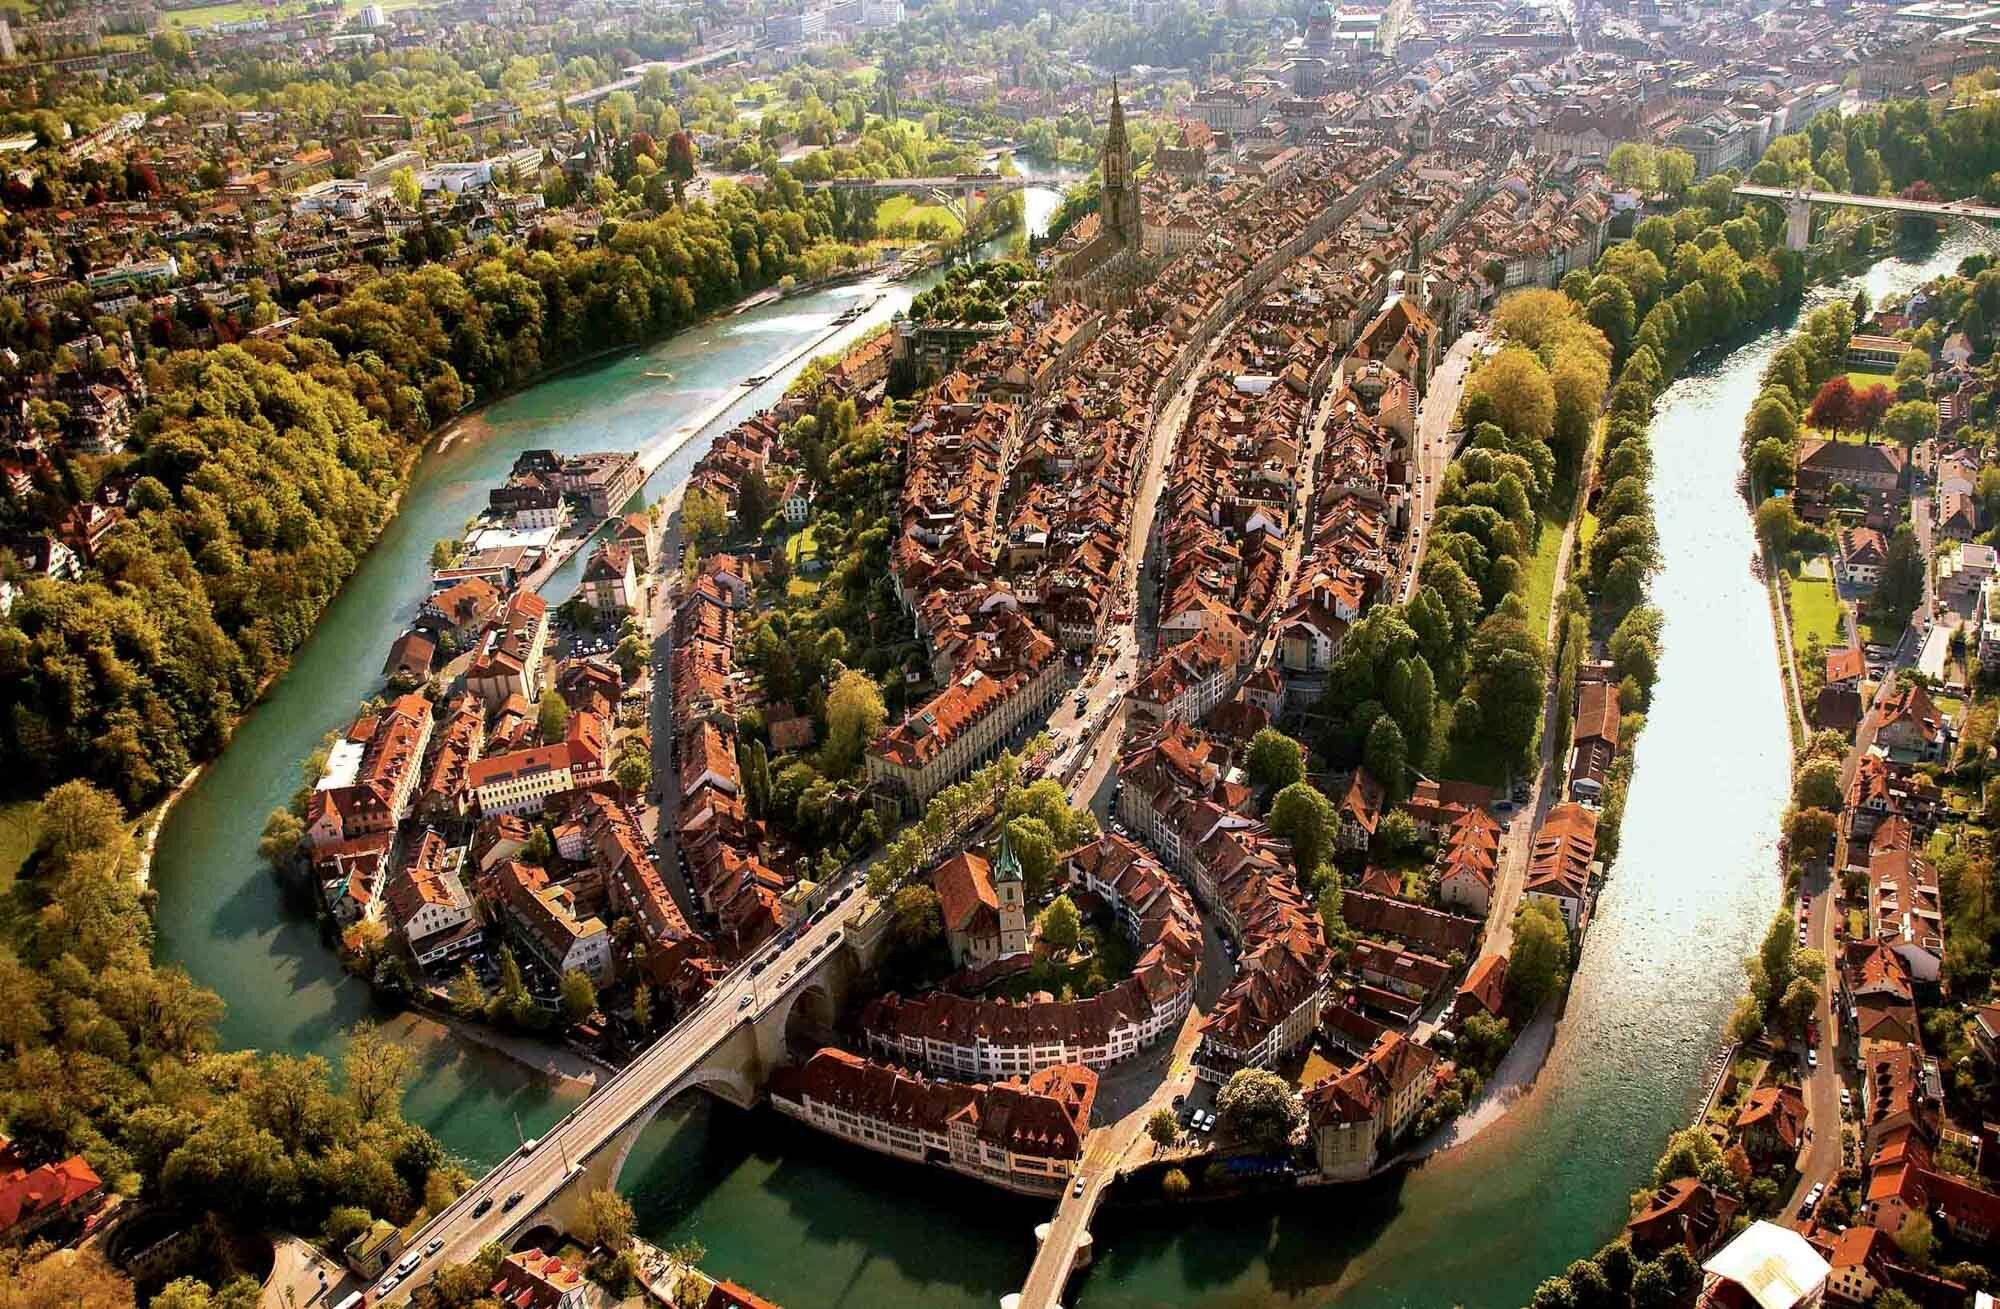 Bern, Switzerland's Federal capital. Aerial photograph of the old town, which is on the UNESCO list of Historic Cities and Towns. Copyright by Switzerland Tourism